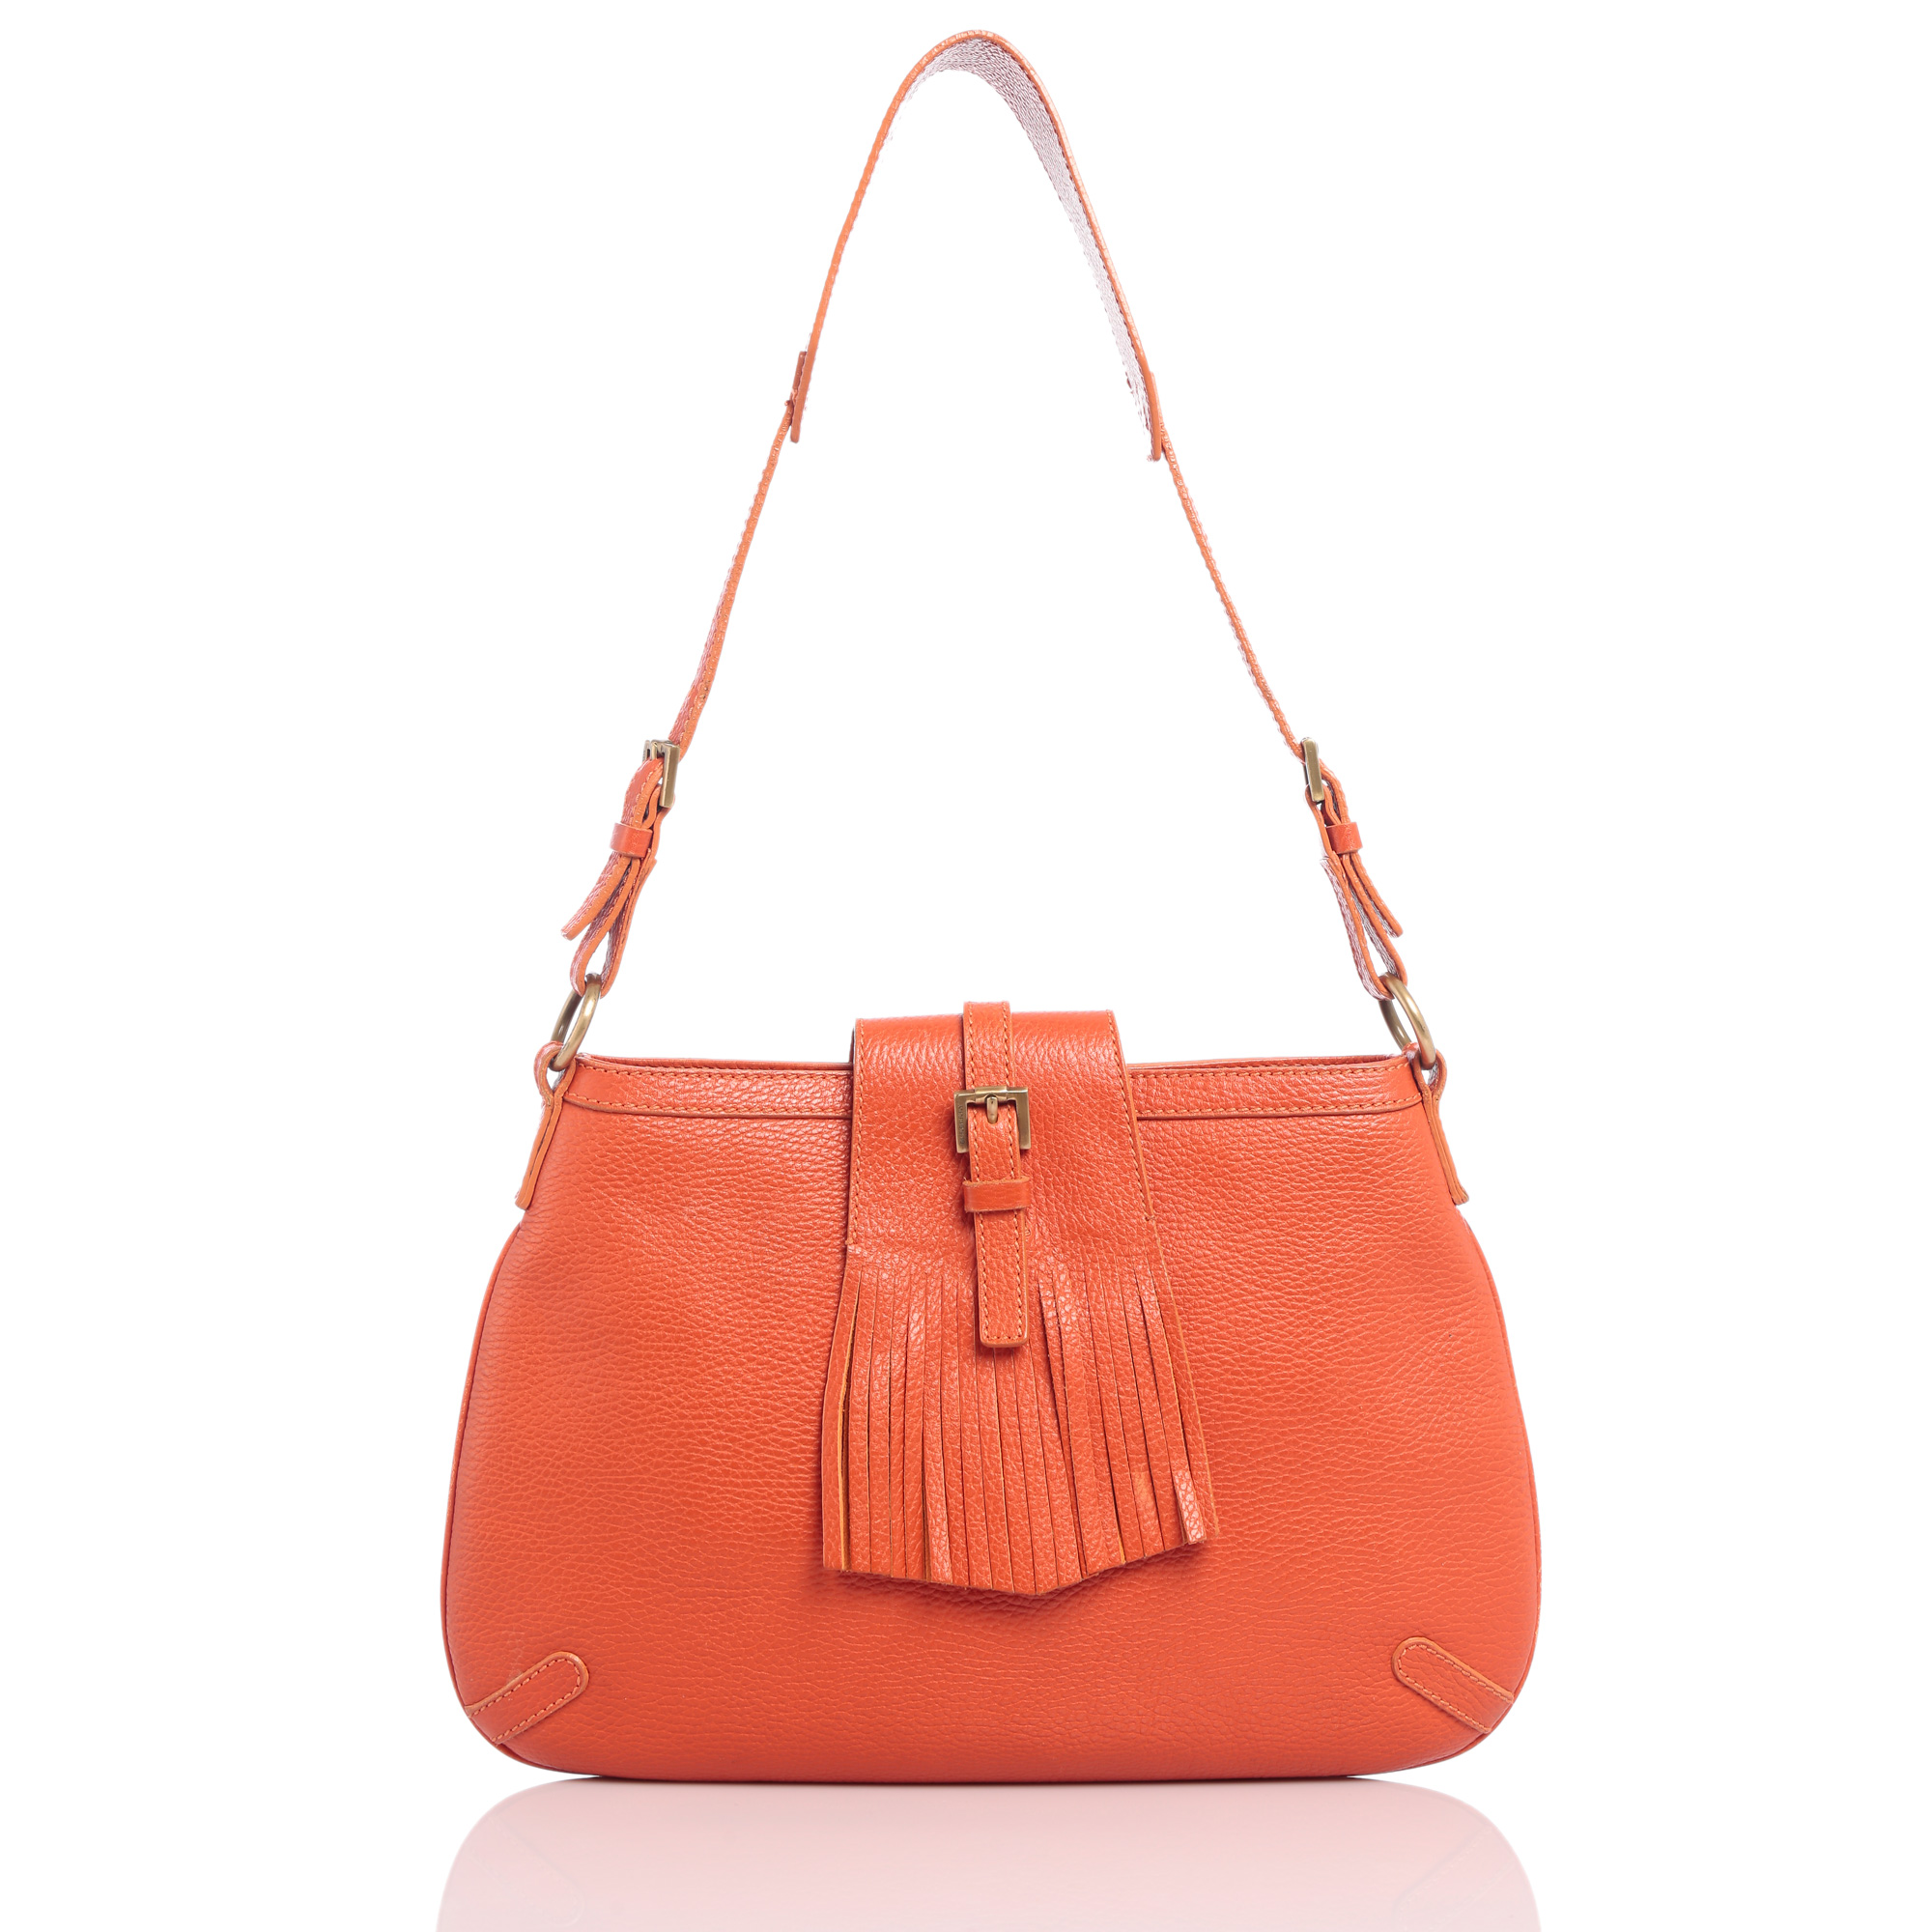 Authentic Burberry Handbag Online India My Luxury Bargain Orange Leather Shoulder Bag